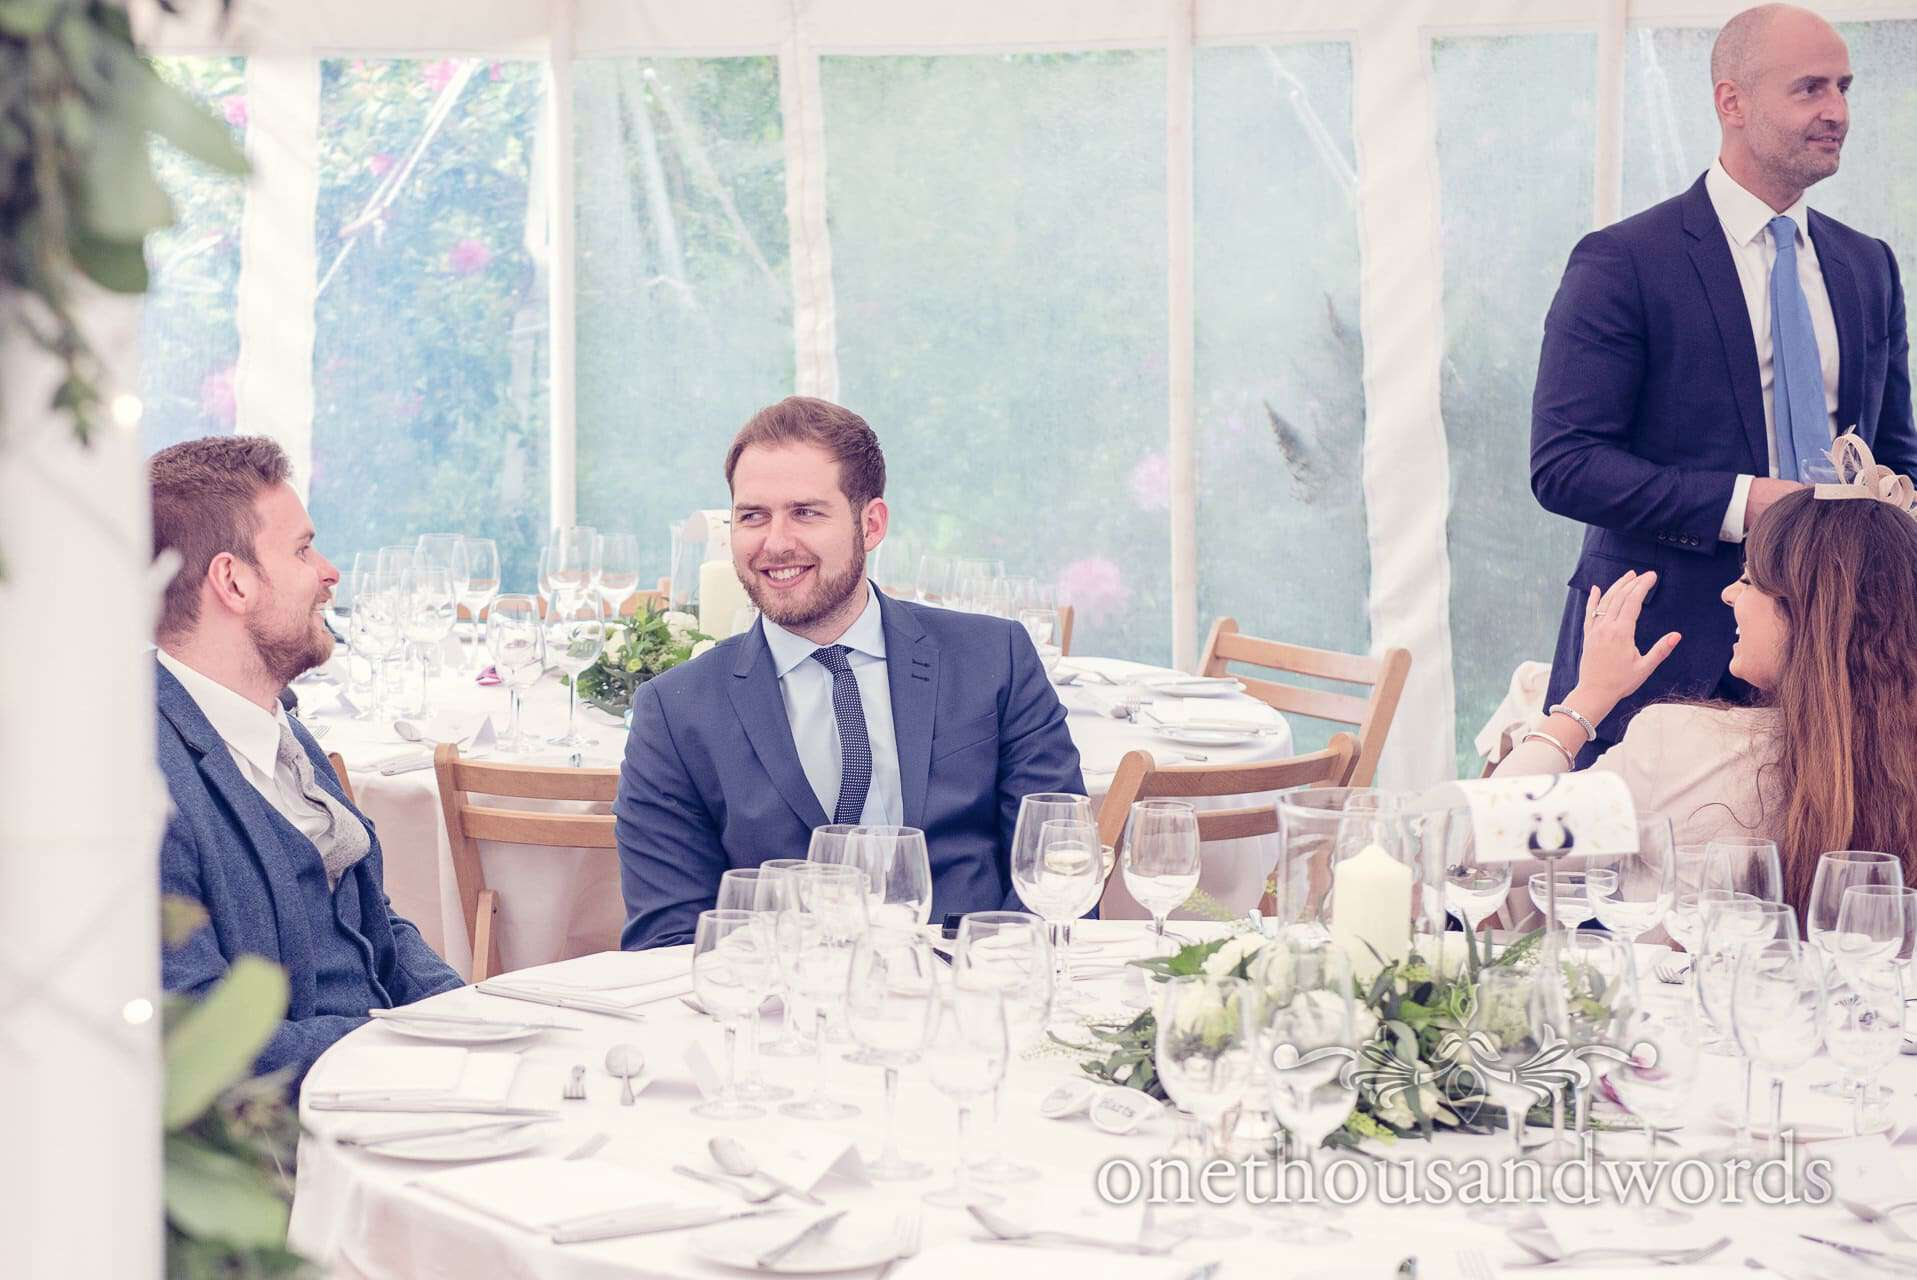 Wedding guests sit at tables in wedding marquee